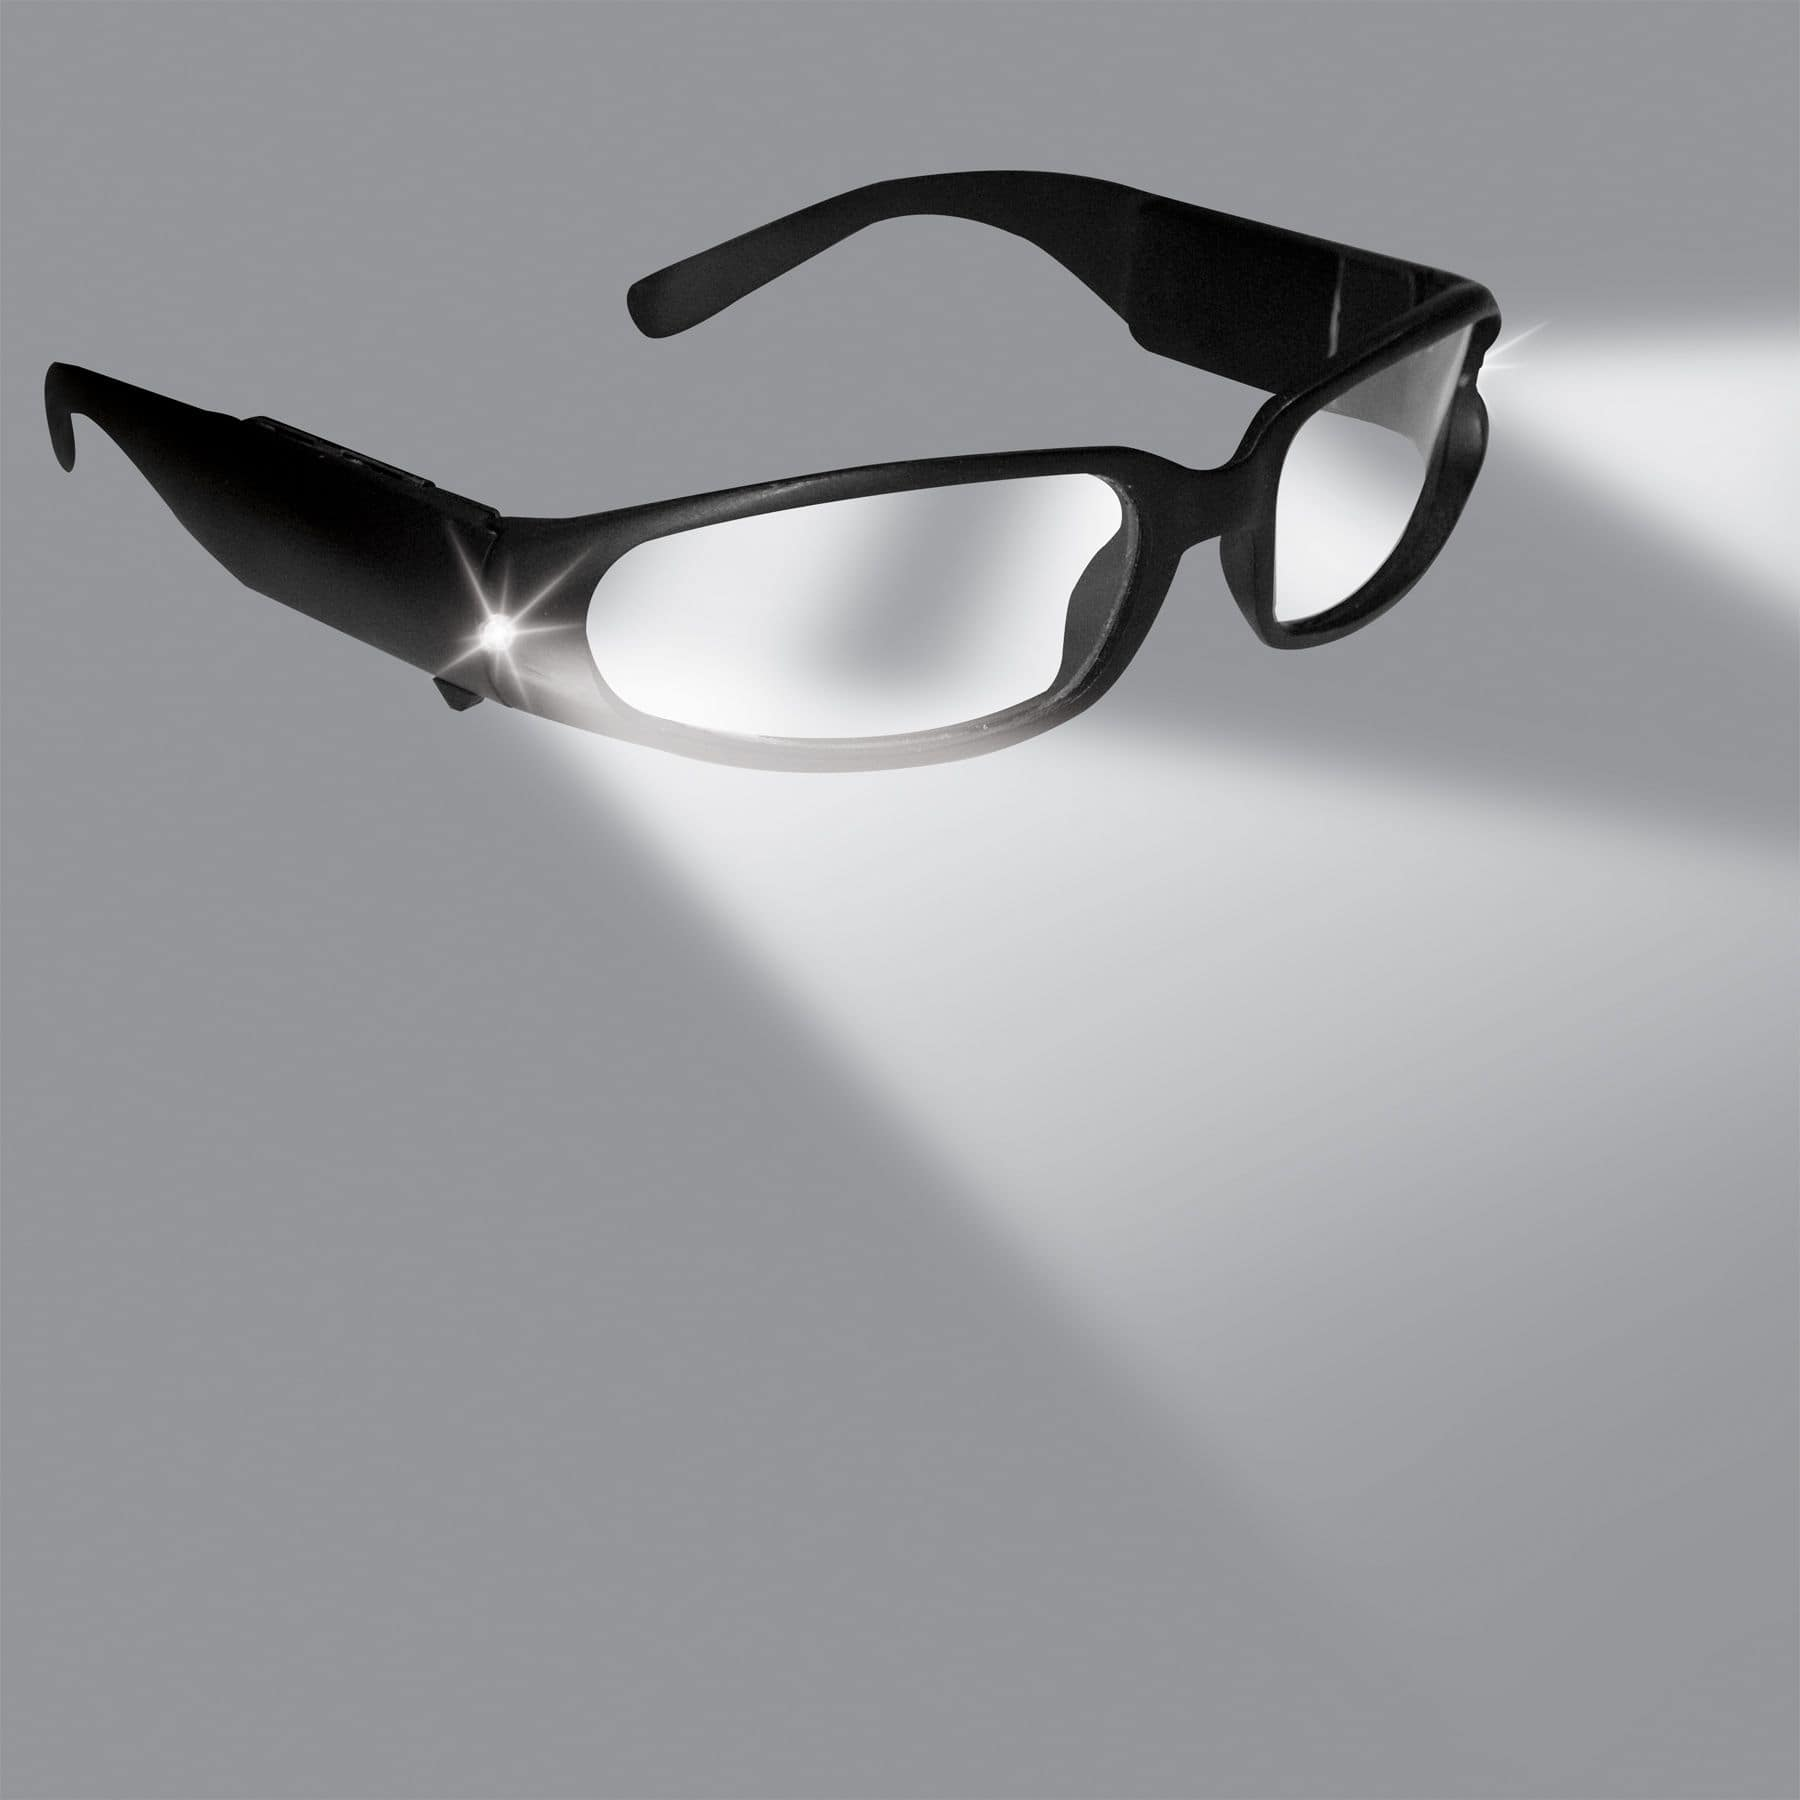 Craftsman Long Life LED/Lighted Safety Glasses $9.92@Sears